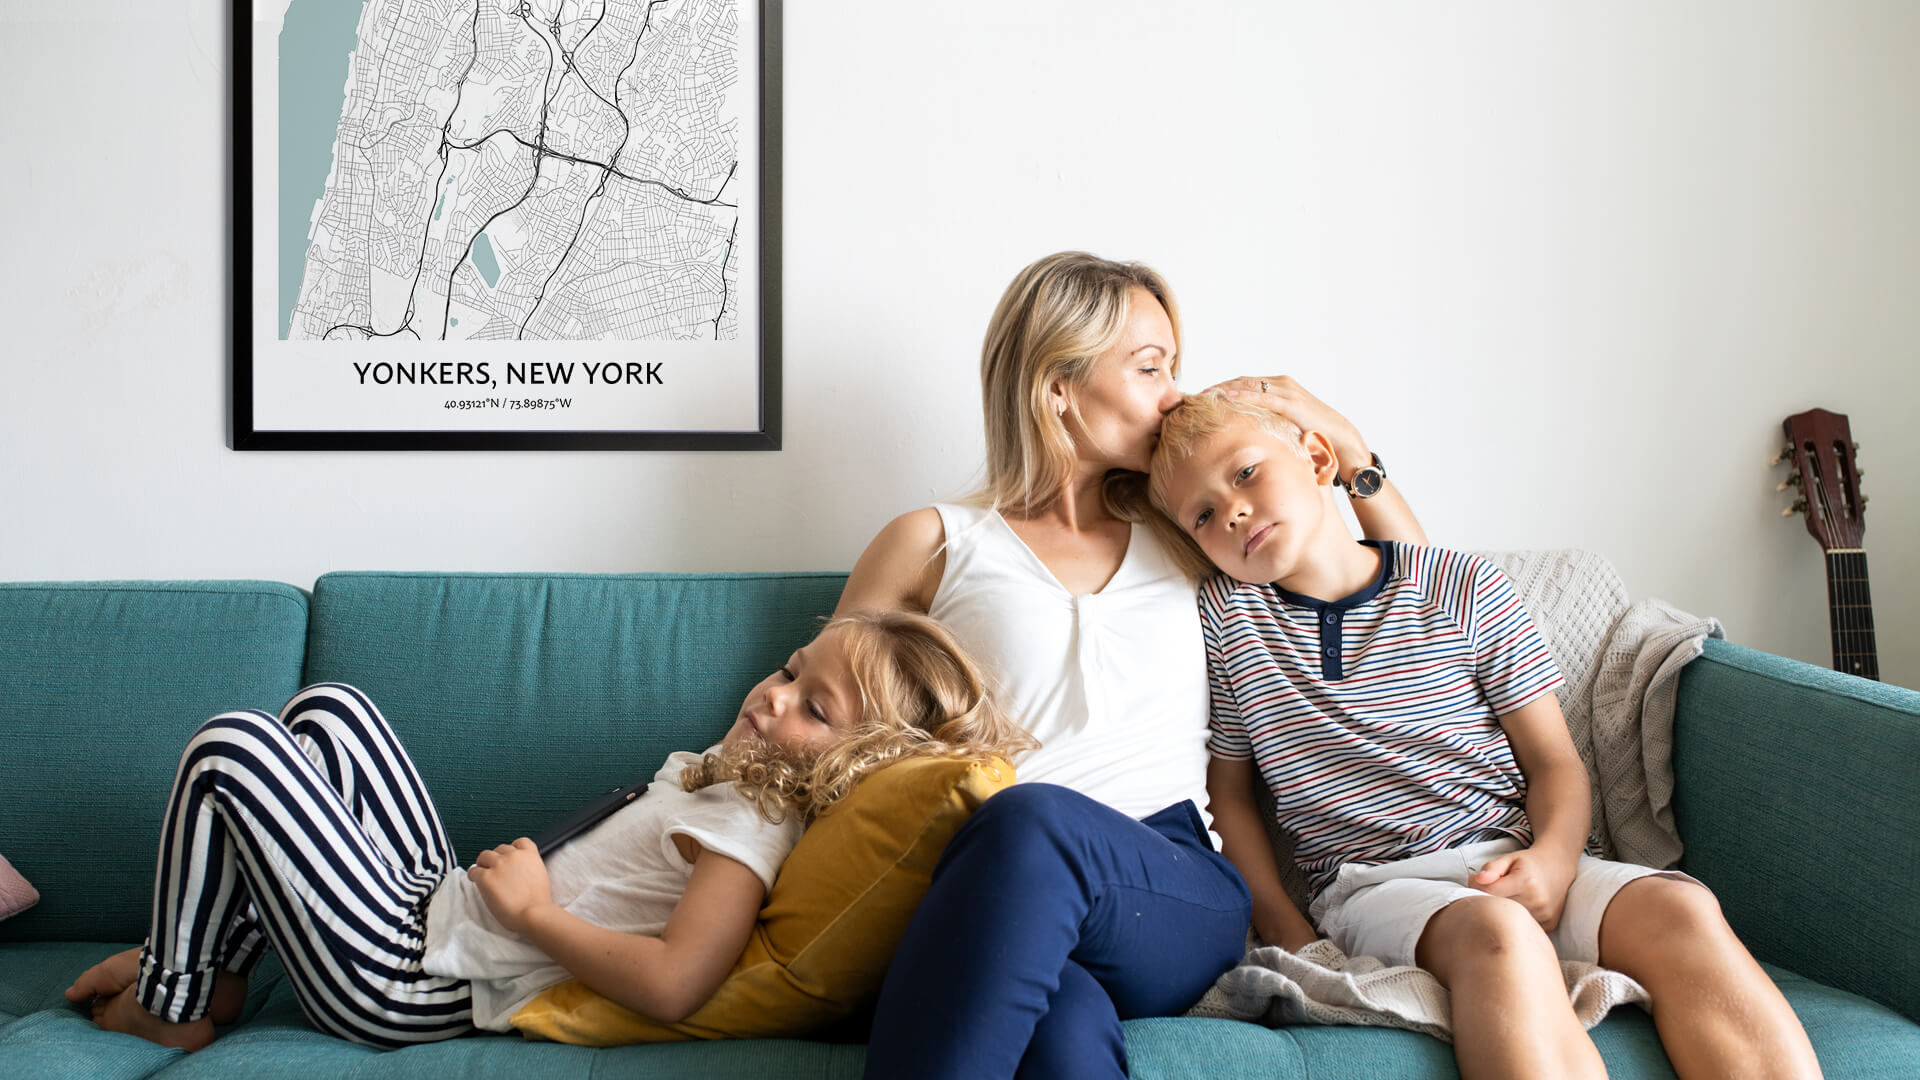 Yonkers map poster